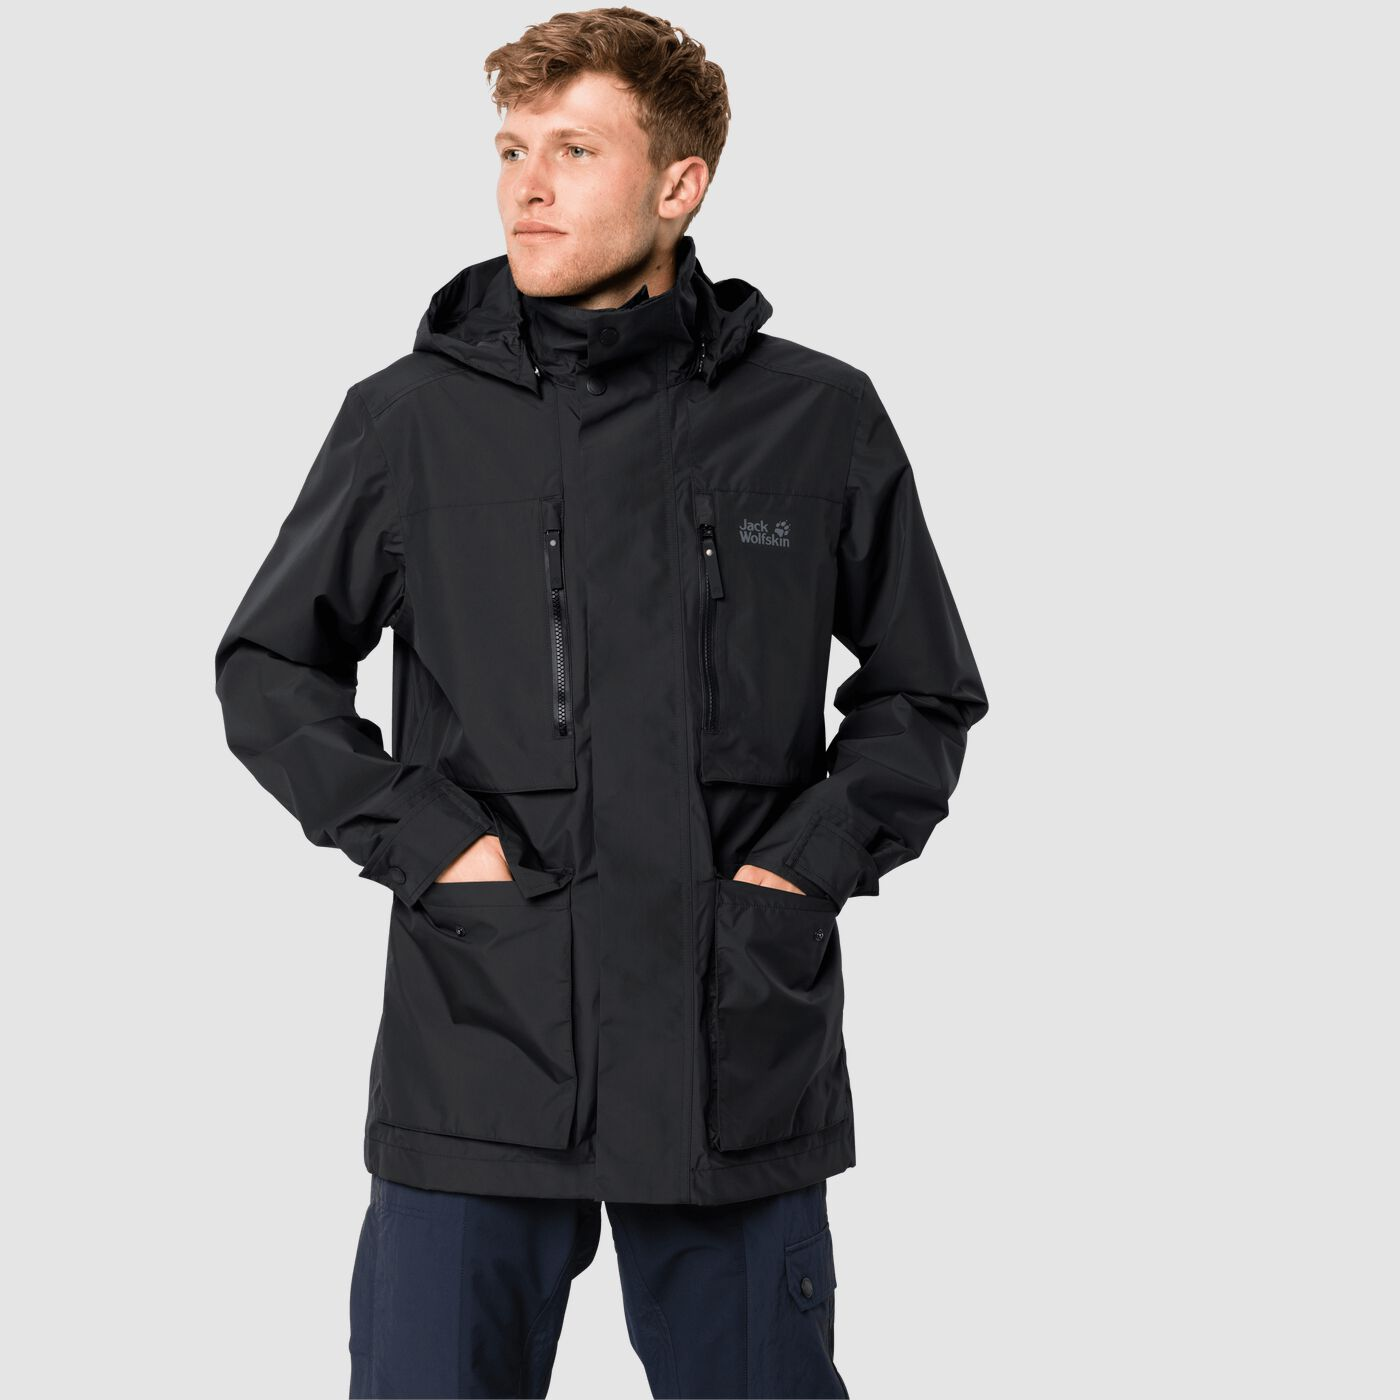 FIELD PORT JACKET